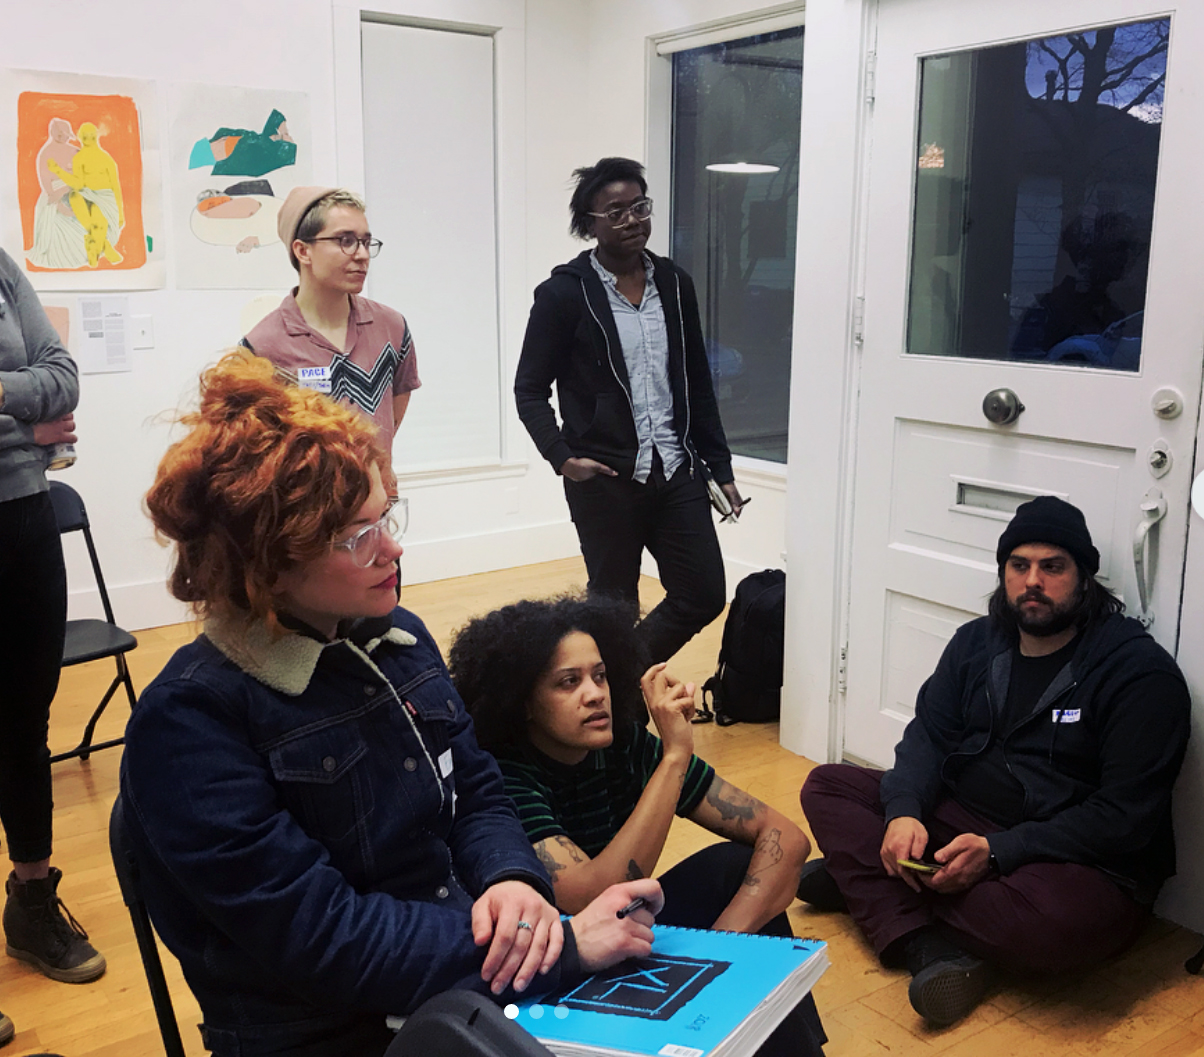 Prequel 2018 Group critique with guest Kemi Adeyemi. Clockwise from right: Marcelo Fontana, Alan Page, Pace Taylor (Pace's artwork seen in the background), Emily Wise, Kemi Adeyemi.